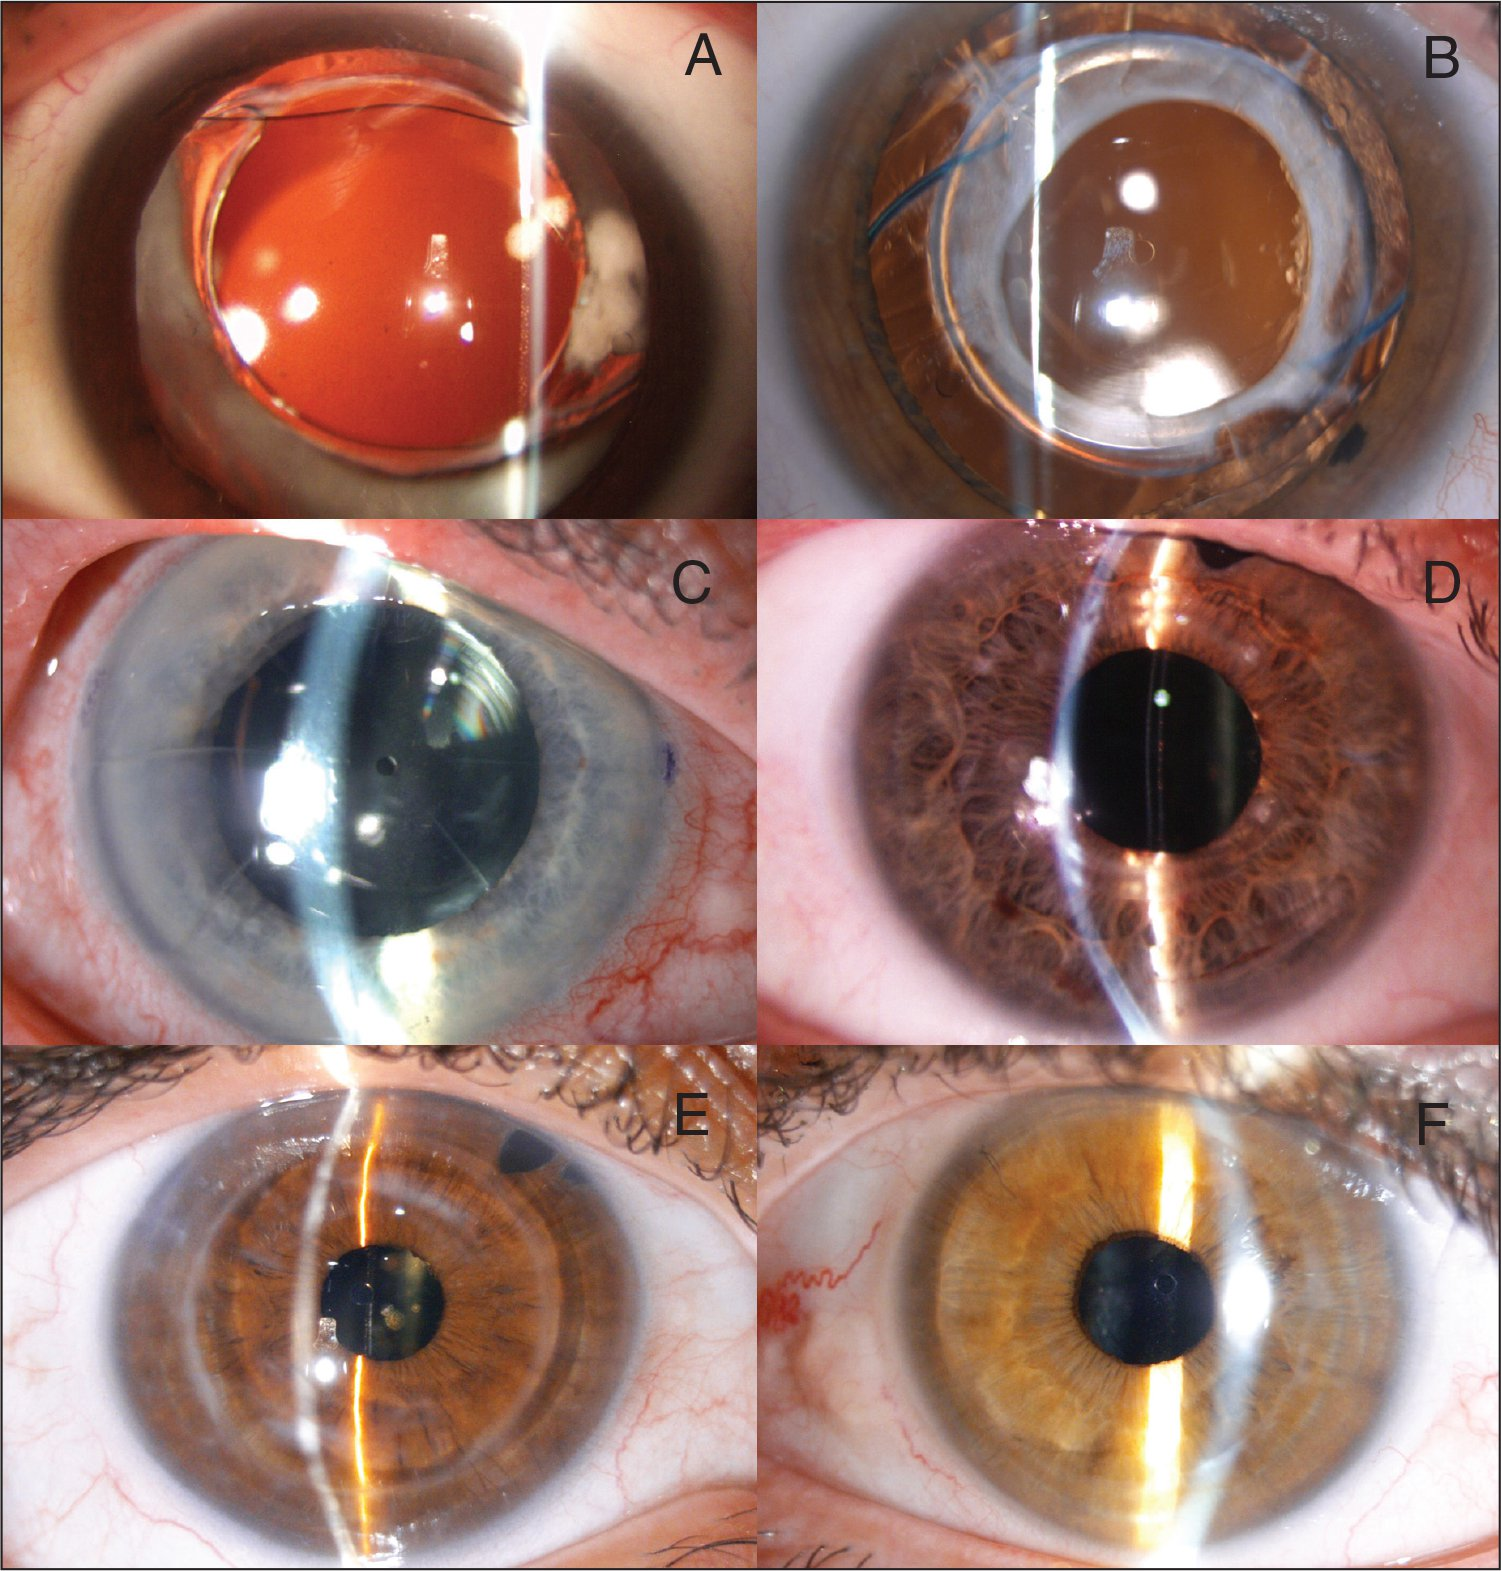 Example of different eyes implanted with an Implantable Collamer Lens (ICL) (STAAR Surgical, Inc., Monrovia, CA). (A) Virgin cornea group, (B) excimer laser group, (C) radial keratotomy group, (D) intrastromal corneal ring segments group, (E) penetrating keratoplasty group, and (F) deep anterior lamellar keratoplasty group.